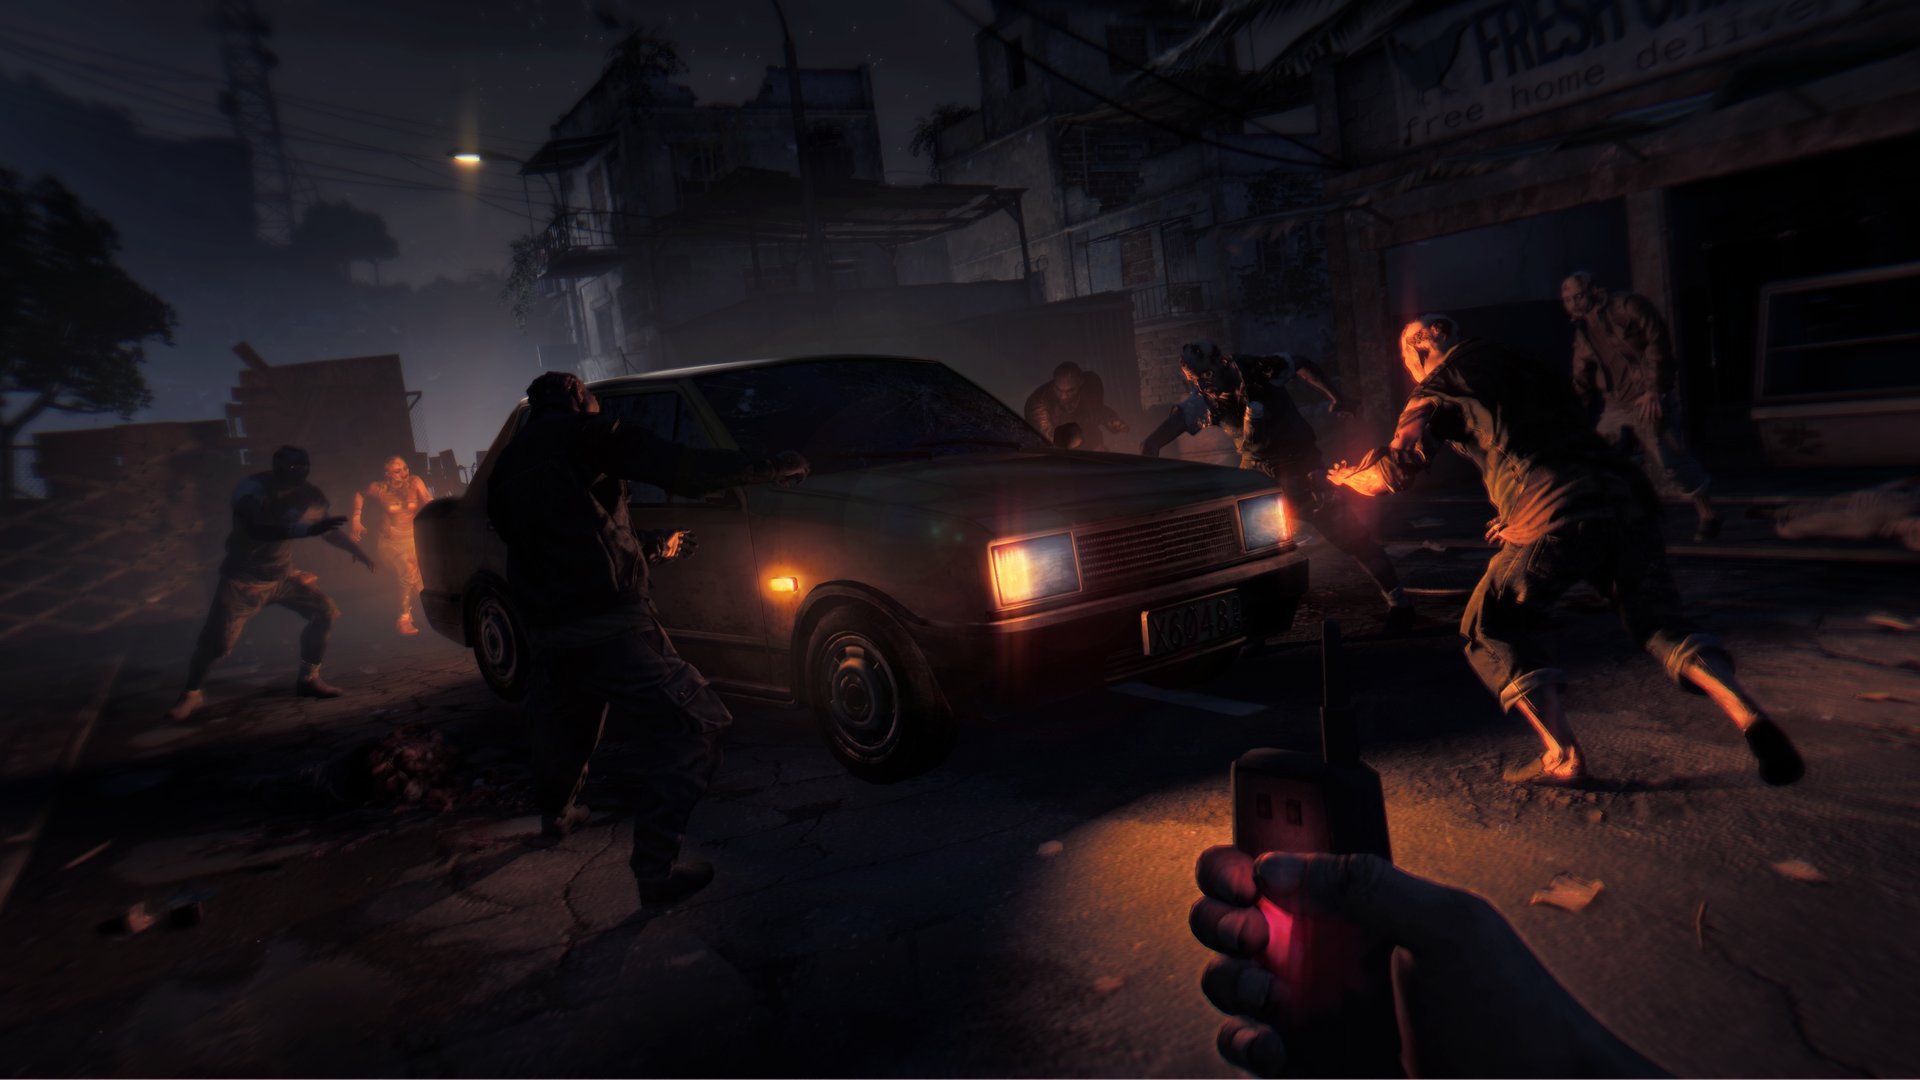 dying light pic 4